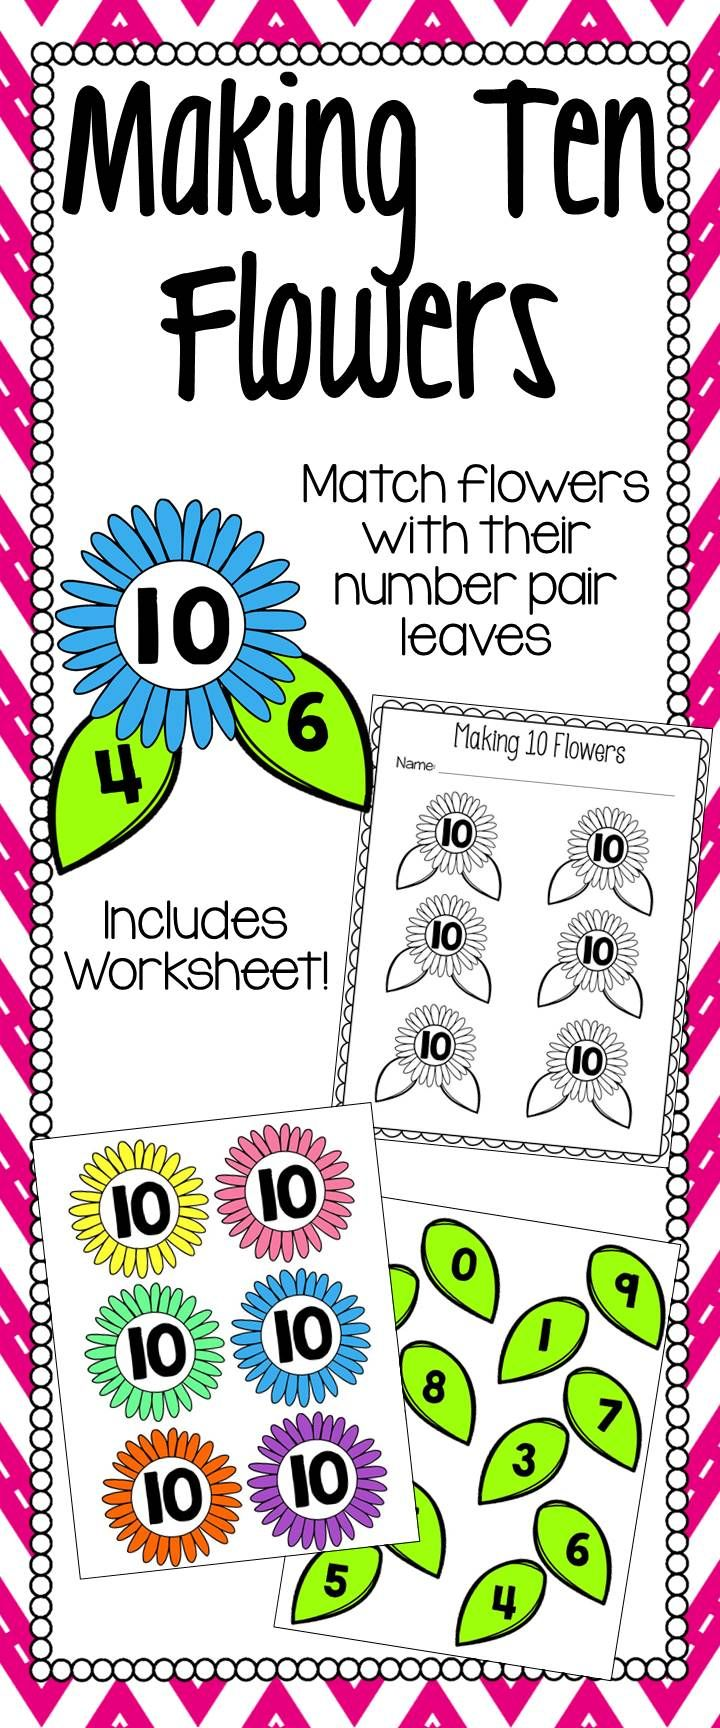 Making Ten Flowers is a great math center to use in your classroom during the spring! Students match number pairs that equal 10. Keep students accountable for their work by adding the included worksheet to your lesson. To keep the preparation of this center printer friendly, print the black and white line flowers onto fun colored paper!